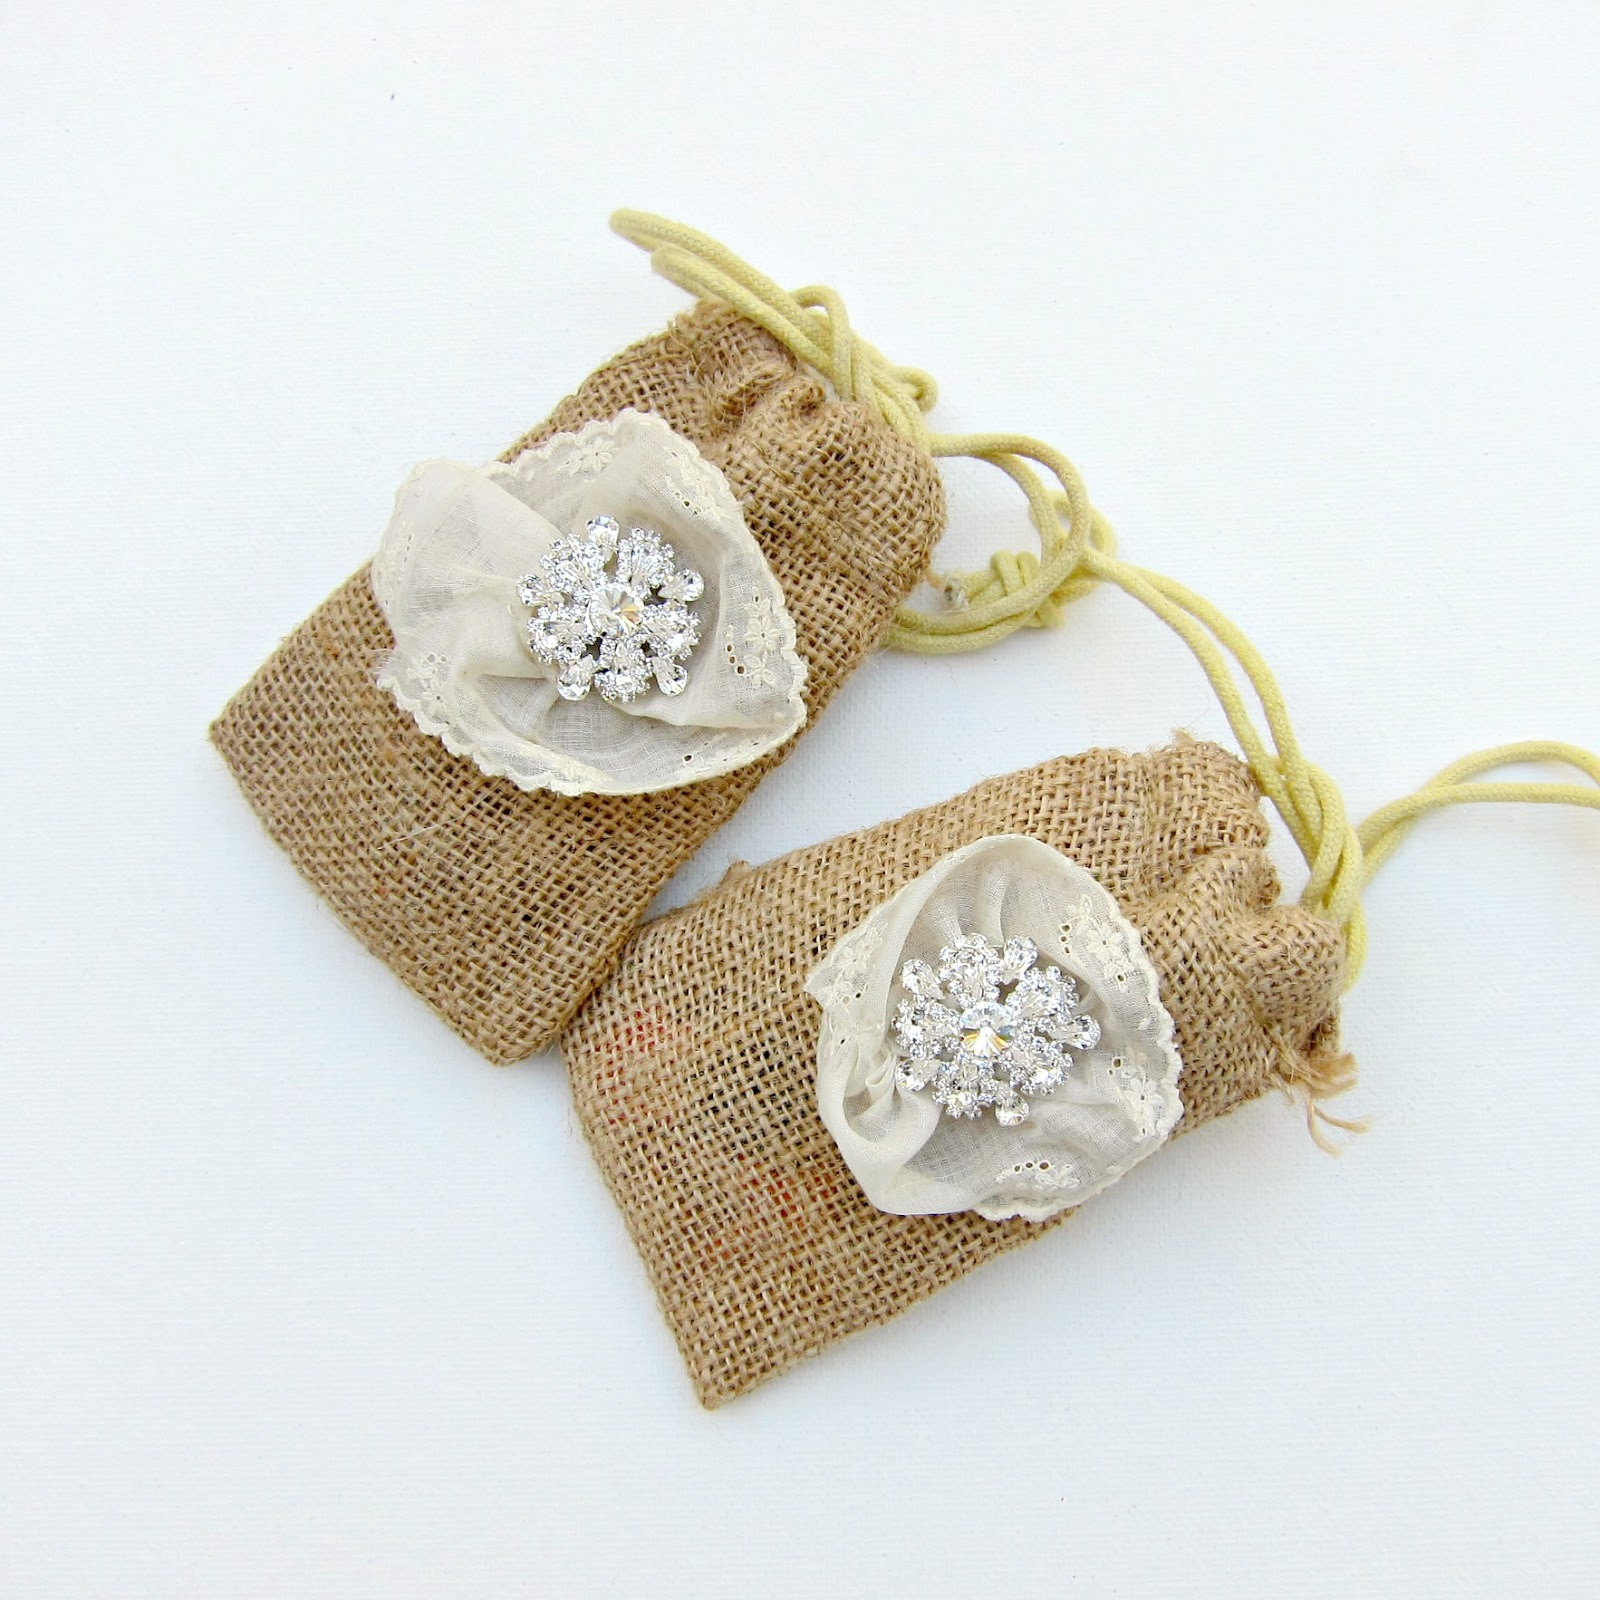 Burlap Wedding Favor Bags Diy : Check back next week for more wedding and party craft ideas!